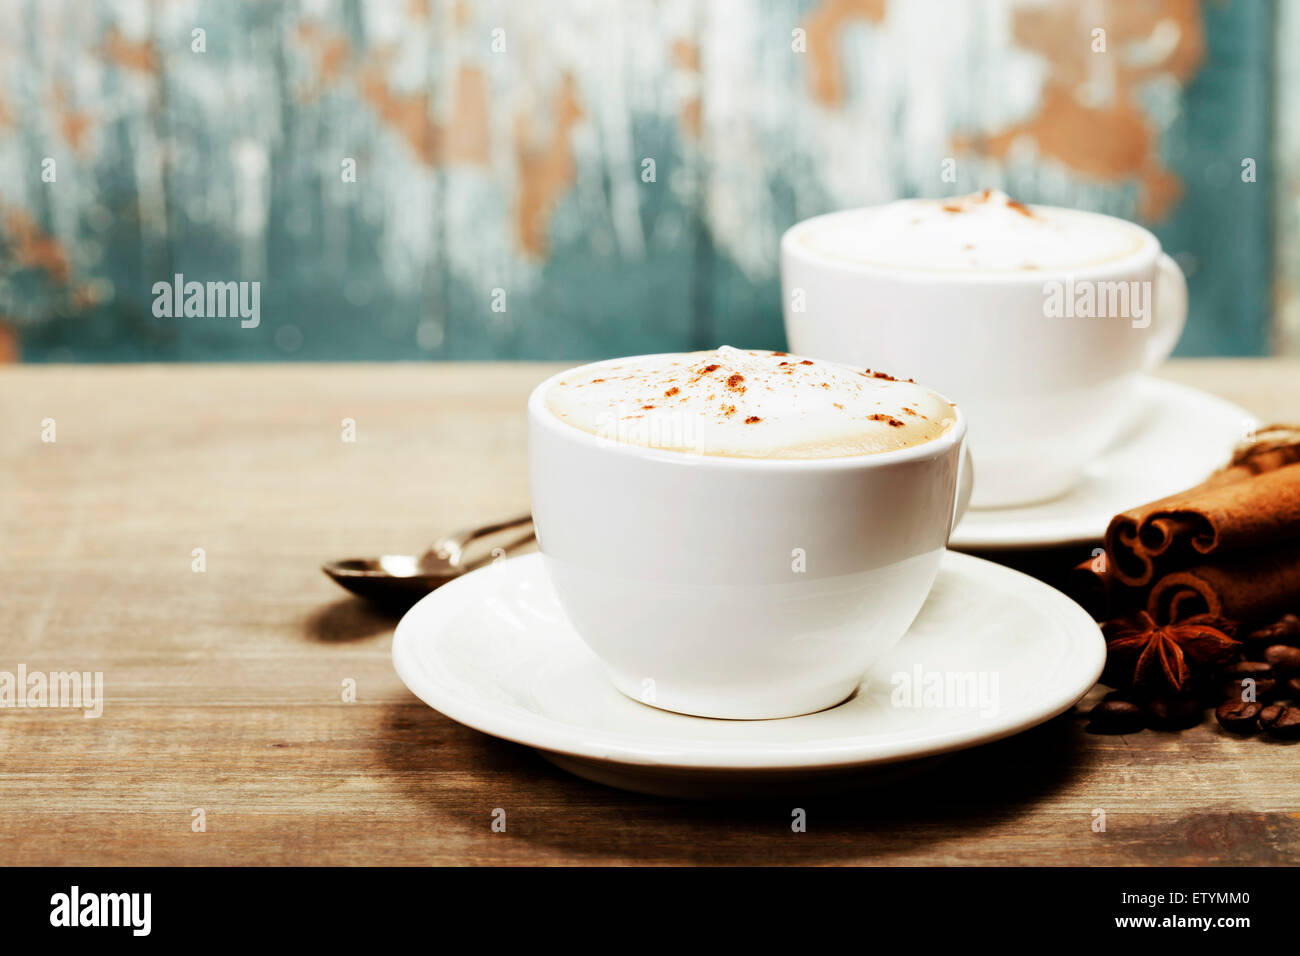 Two cups of coffee on old wooden table - Stock Image